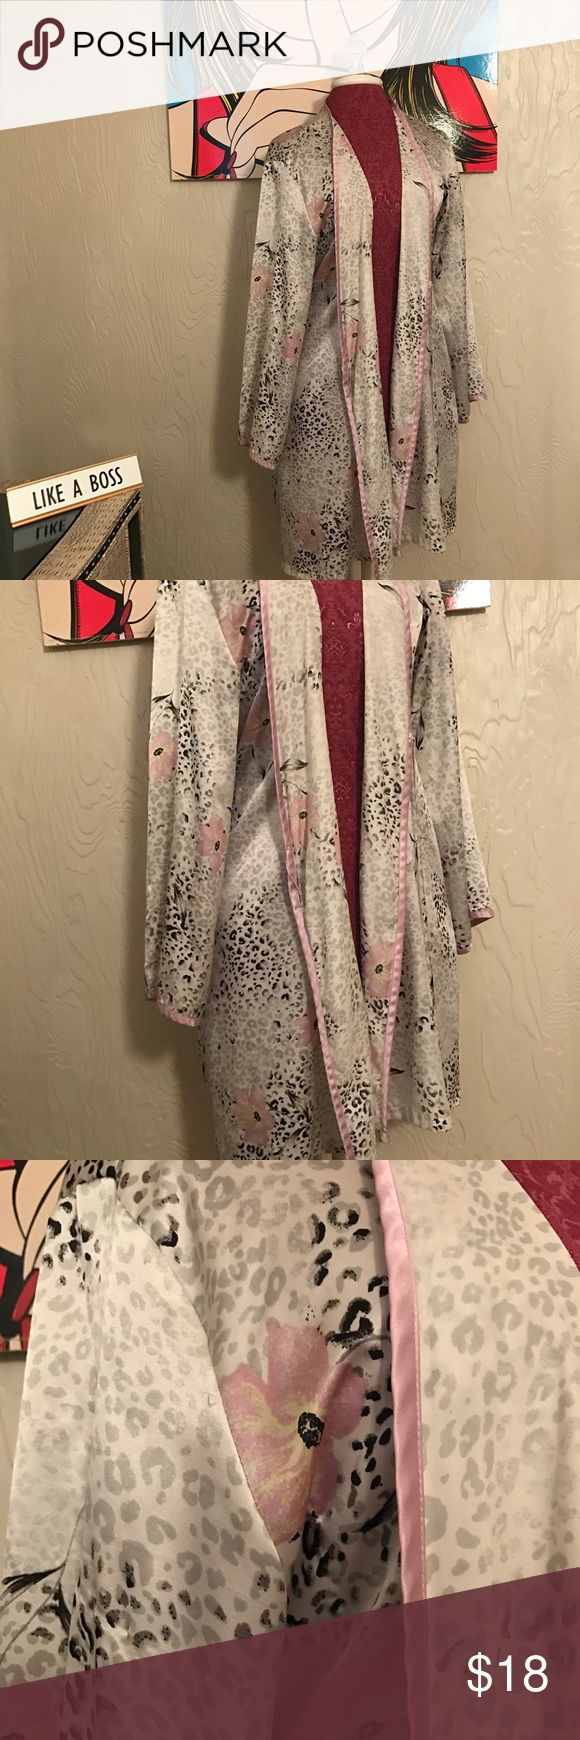 """Jones New York Elegant women's house/bath robe can also be used as fashionable kimono  Gorgeous floral print fabric, 100% Polyester, 39"""" long  Missing tie strings as seen in picture, other than that excellent pre-loved condition  ALL questions welcome! 💋 Jones New York Intimates & Sleepwear Robes"""